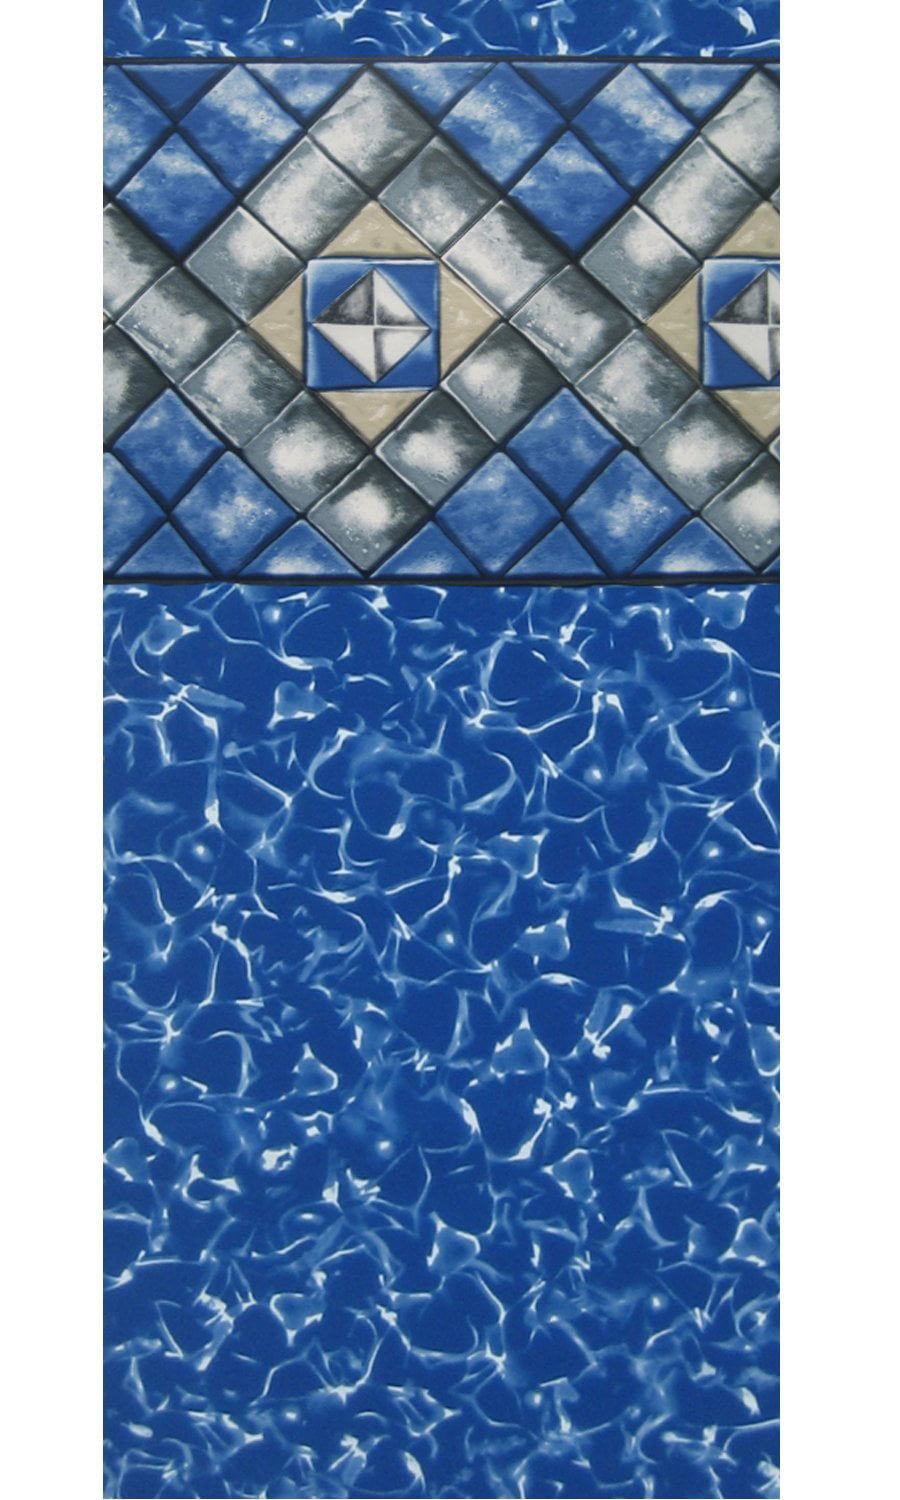 15-ft-by-24-ft-by-48 Inch Oval Manor Esther Williams Beaded Swimming Pool  Liner 25 Gauge - Walmart.com